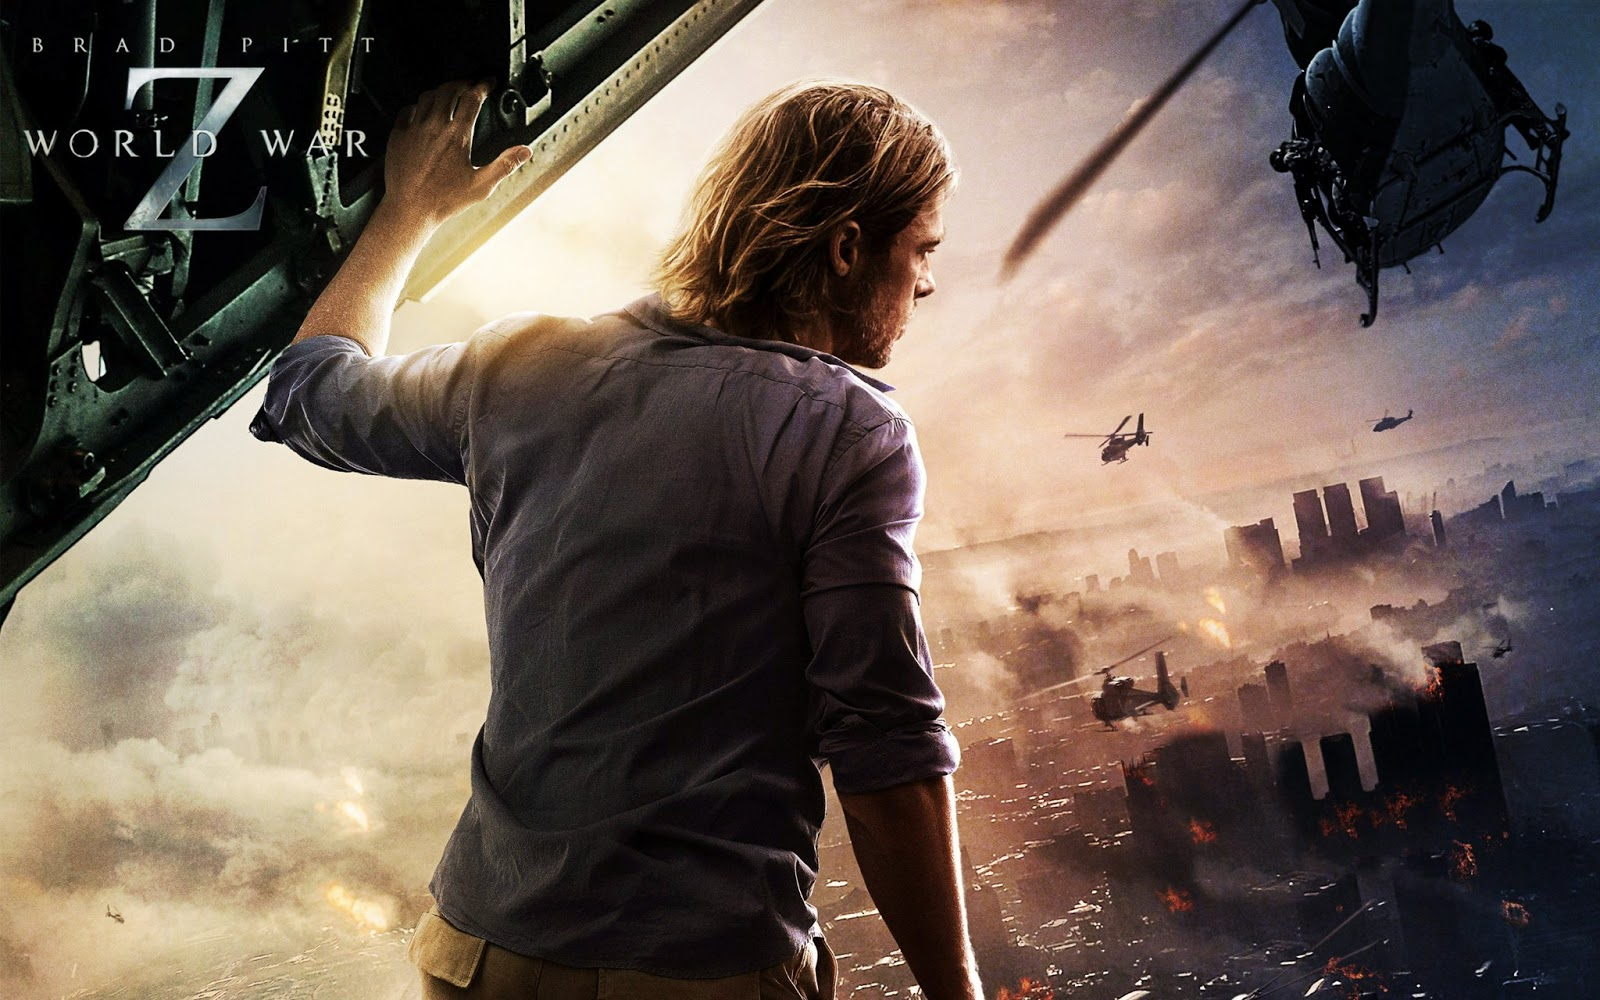 The Crypt: World War Z Review